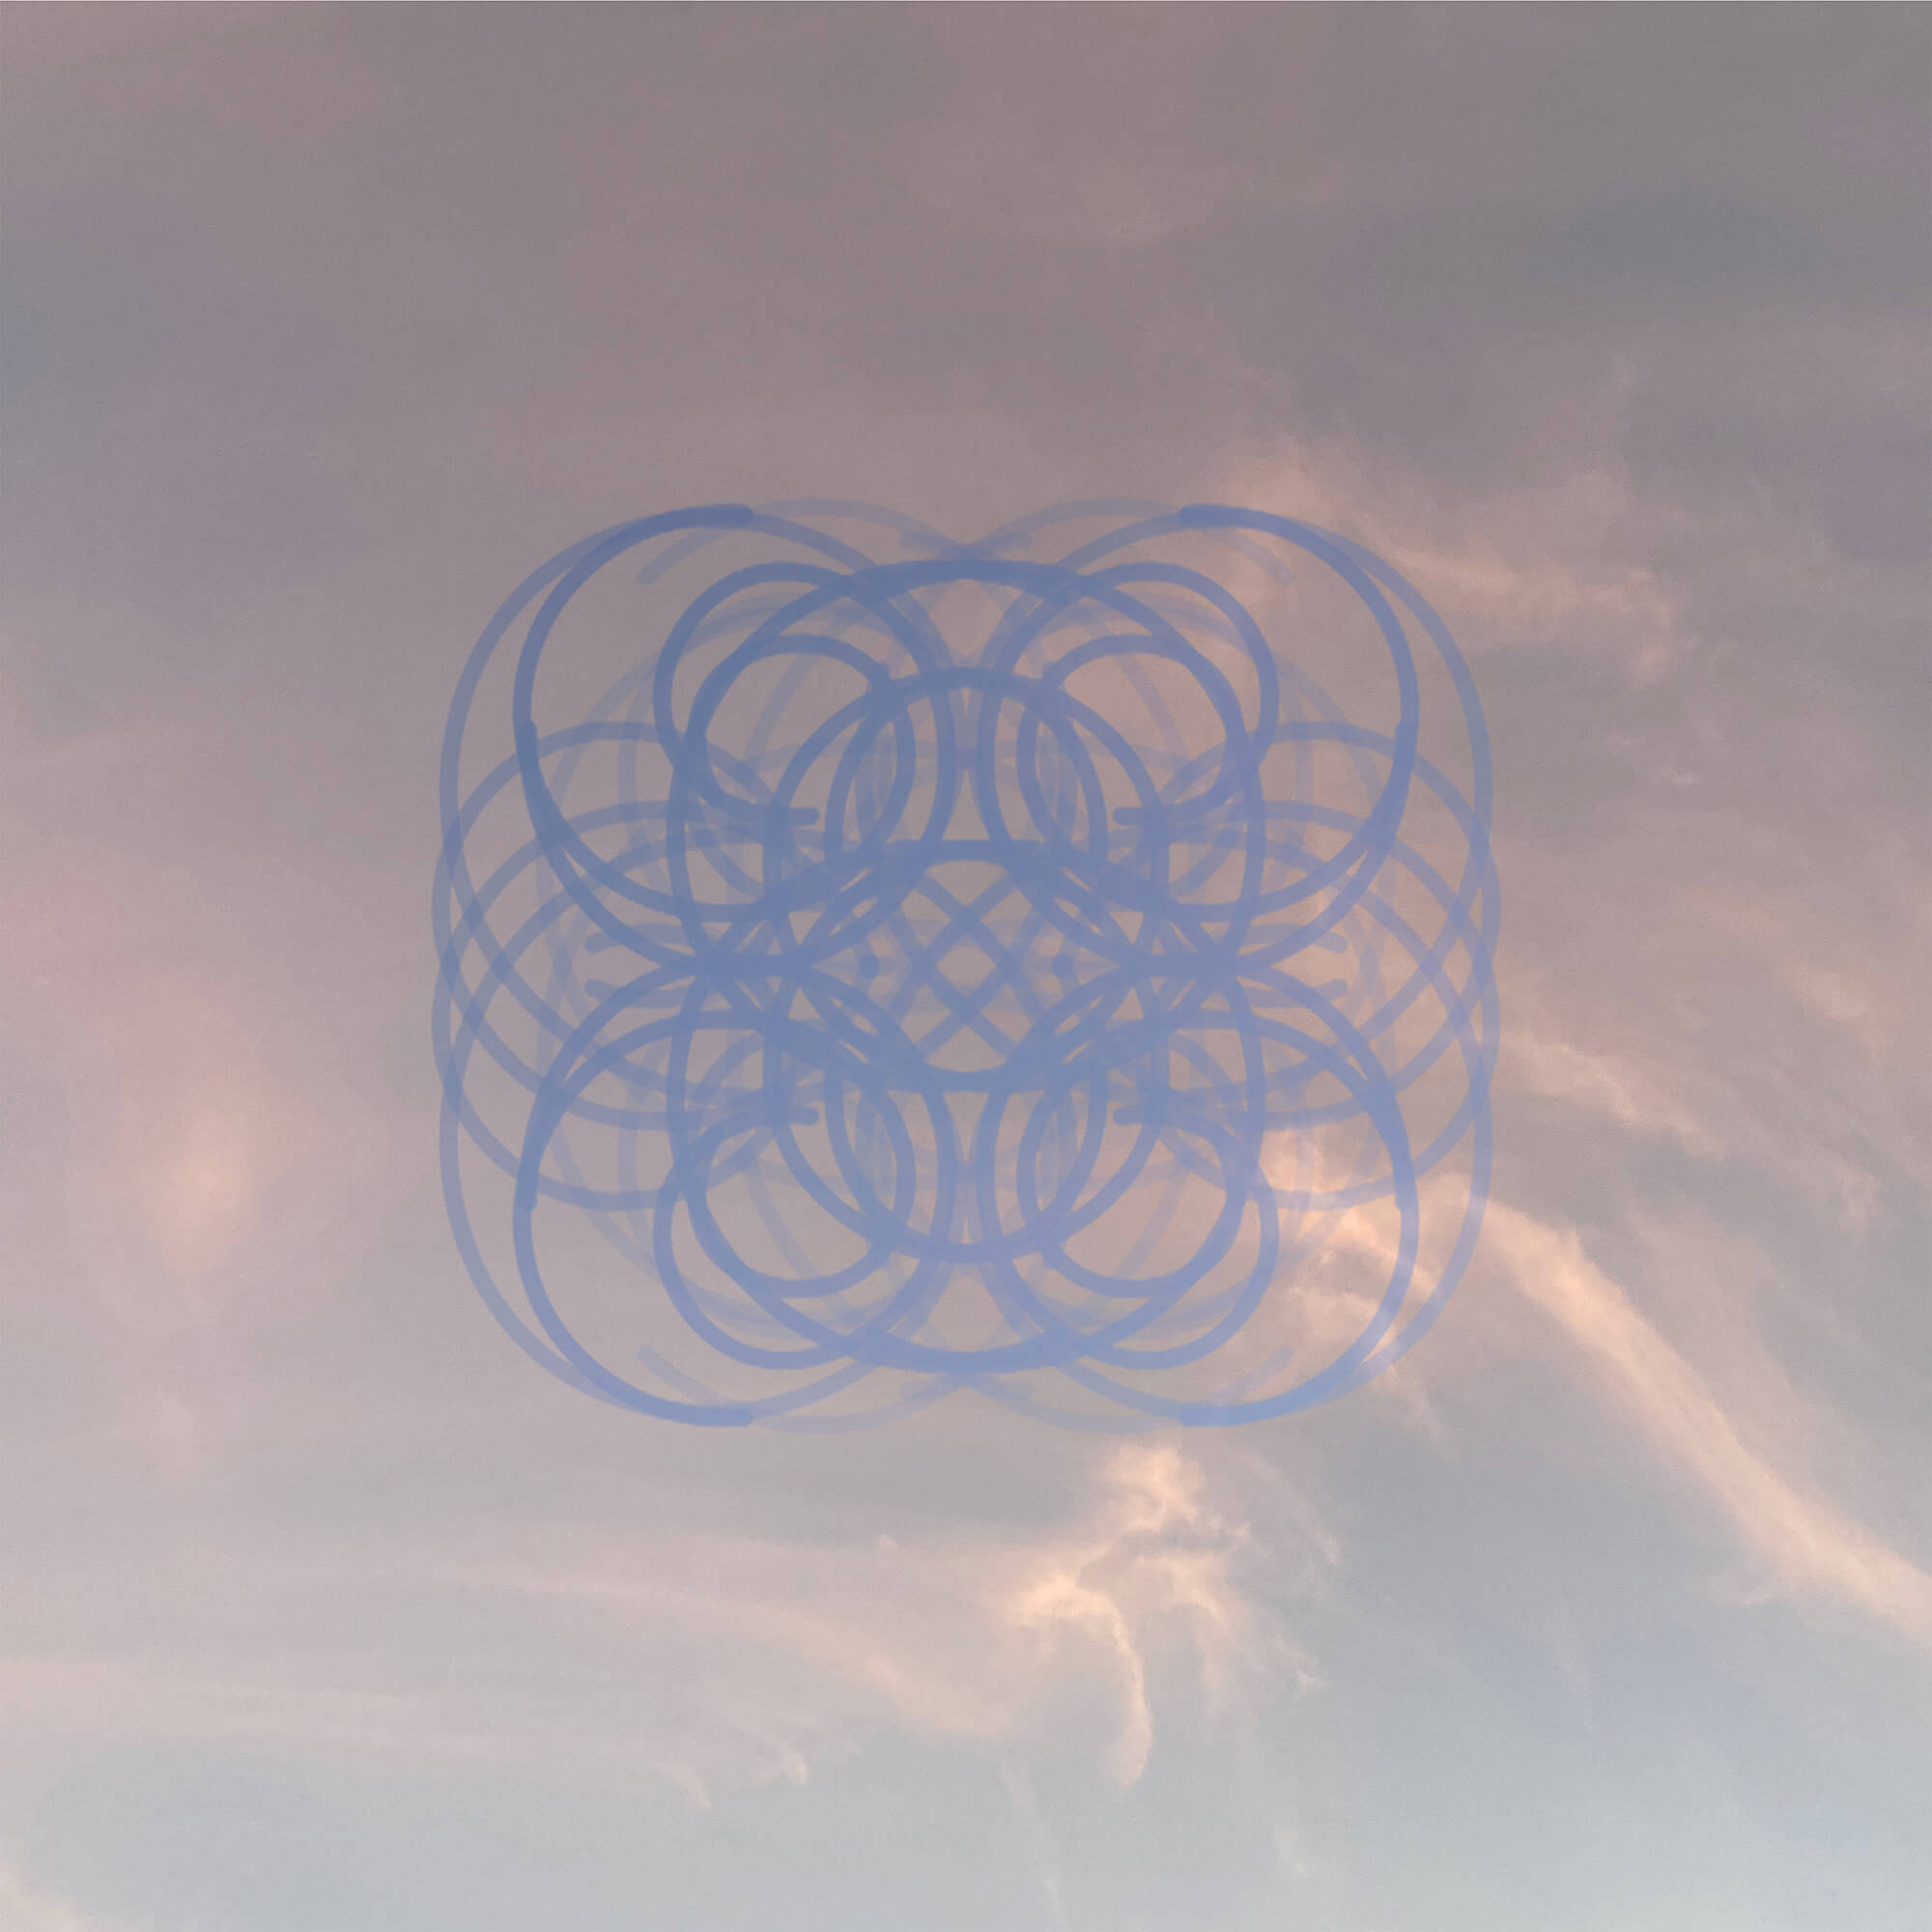 Composite image of Sky Photos and Mandala from CD release packaging